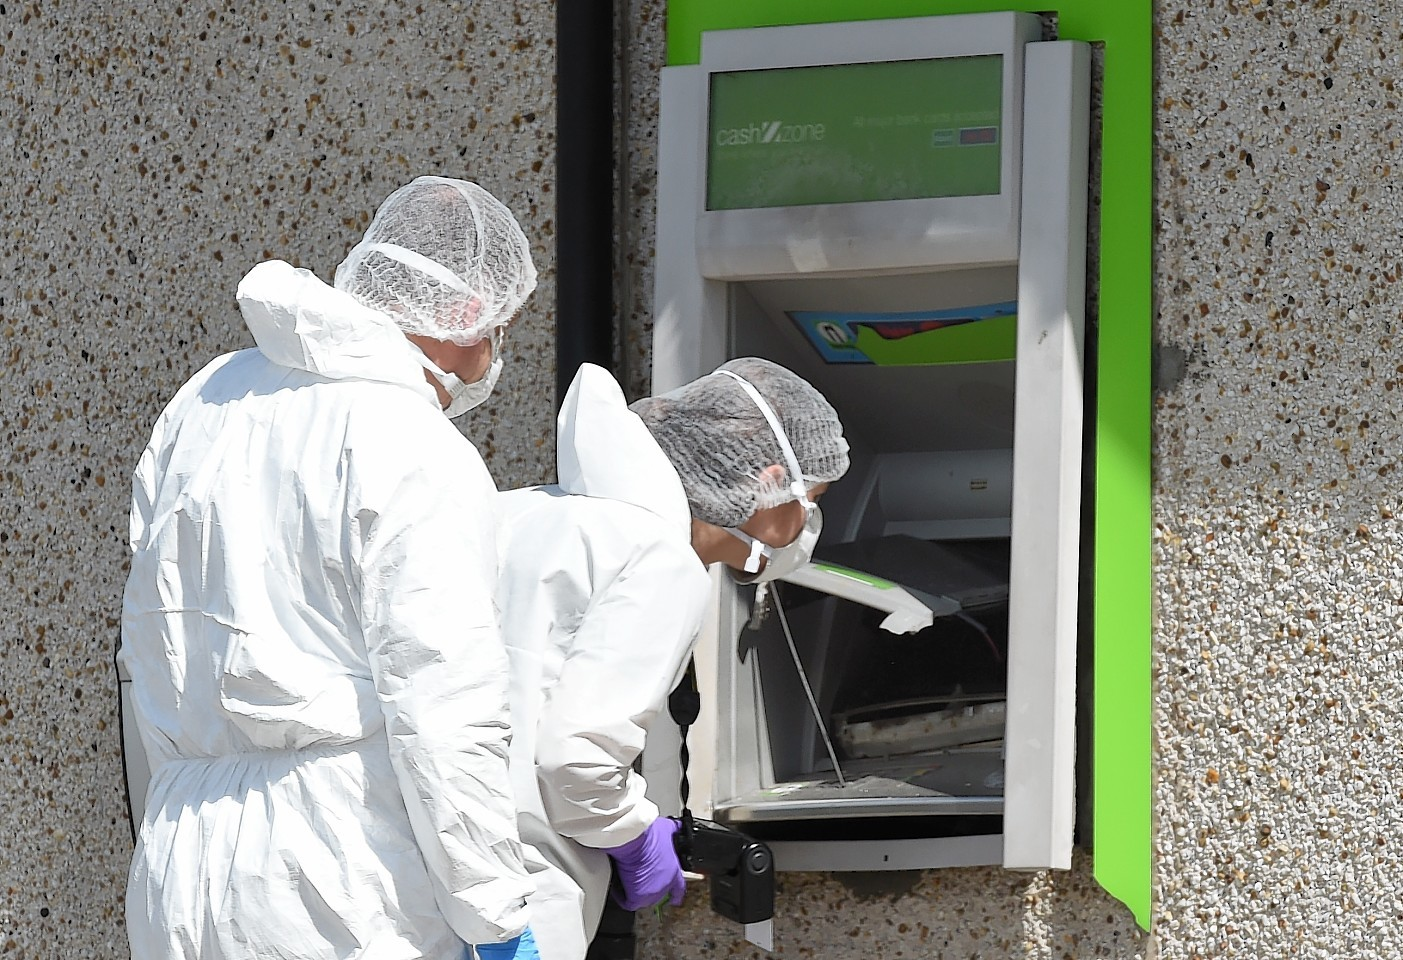 Thieves tried to break in to the Co-op and the cashline machine at Kingswells.